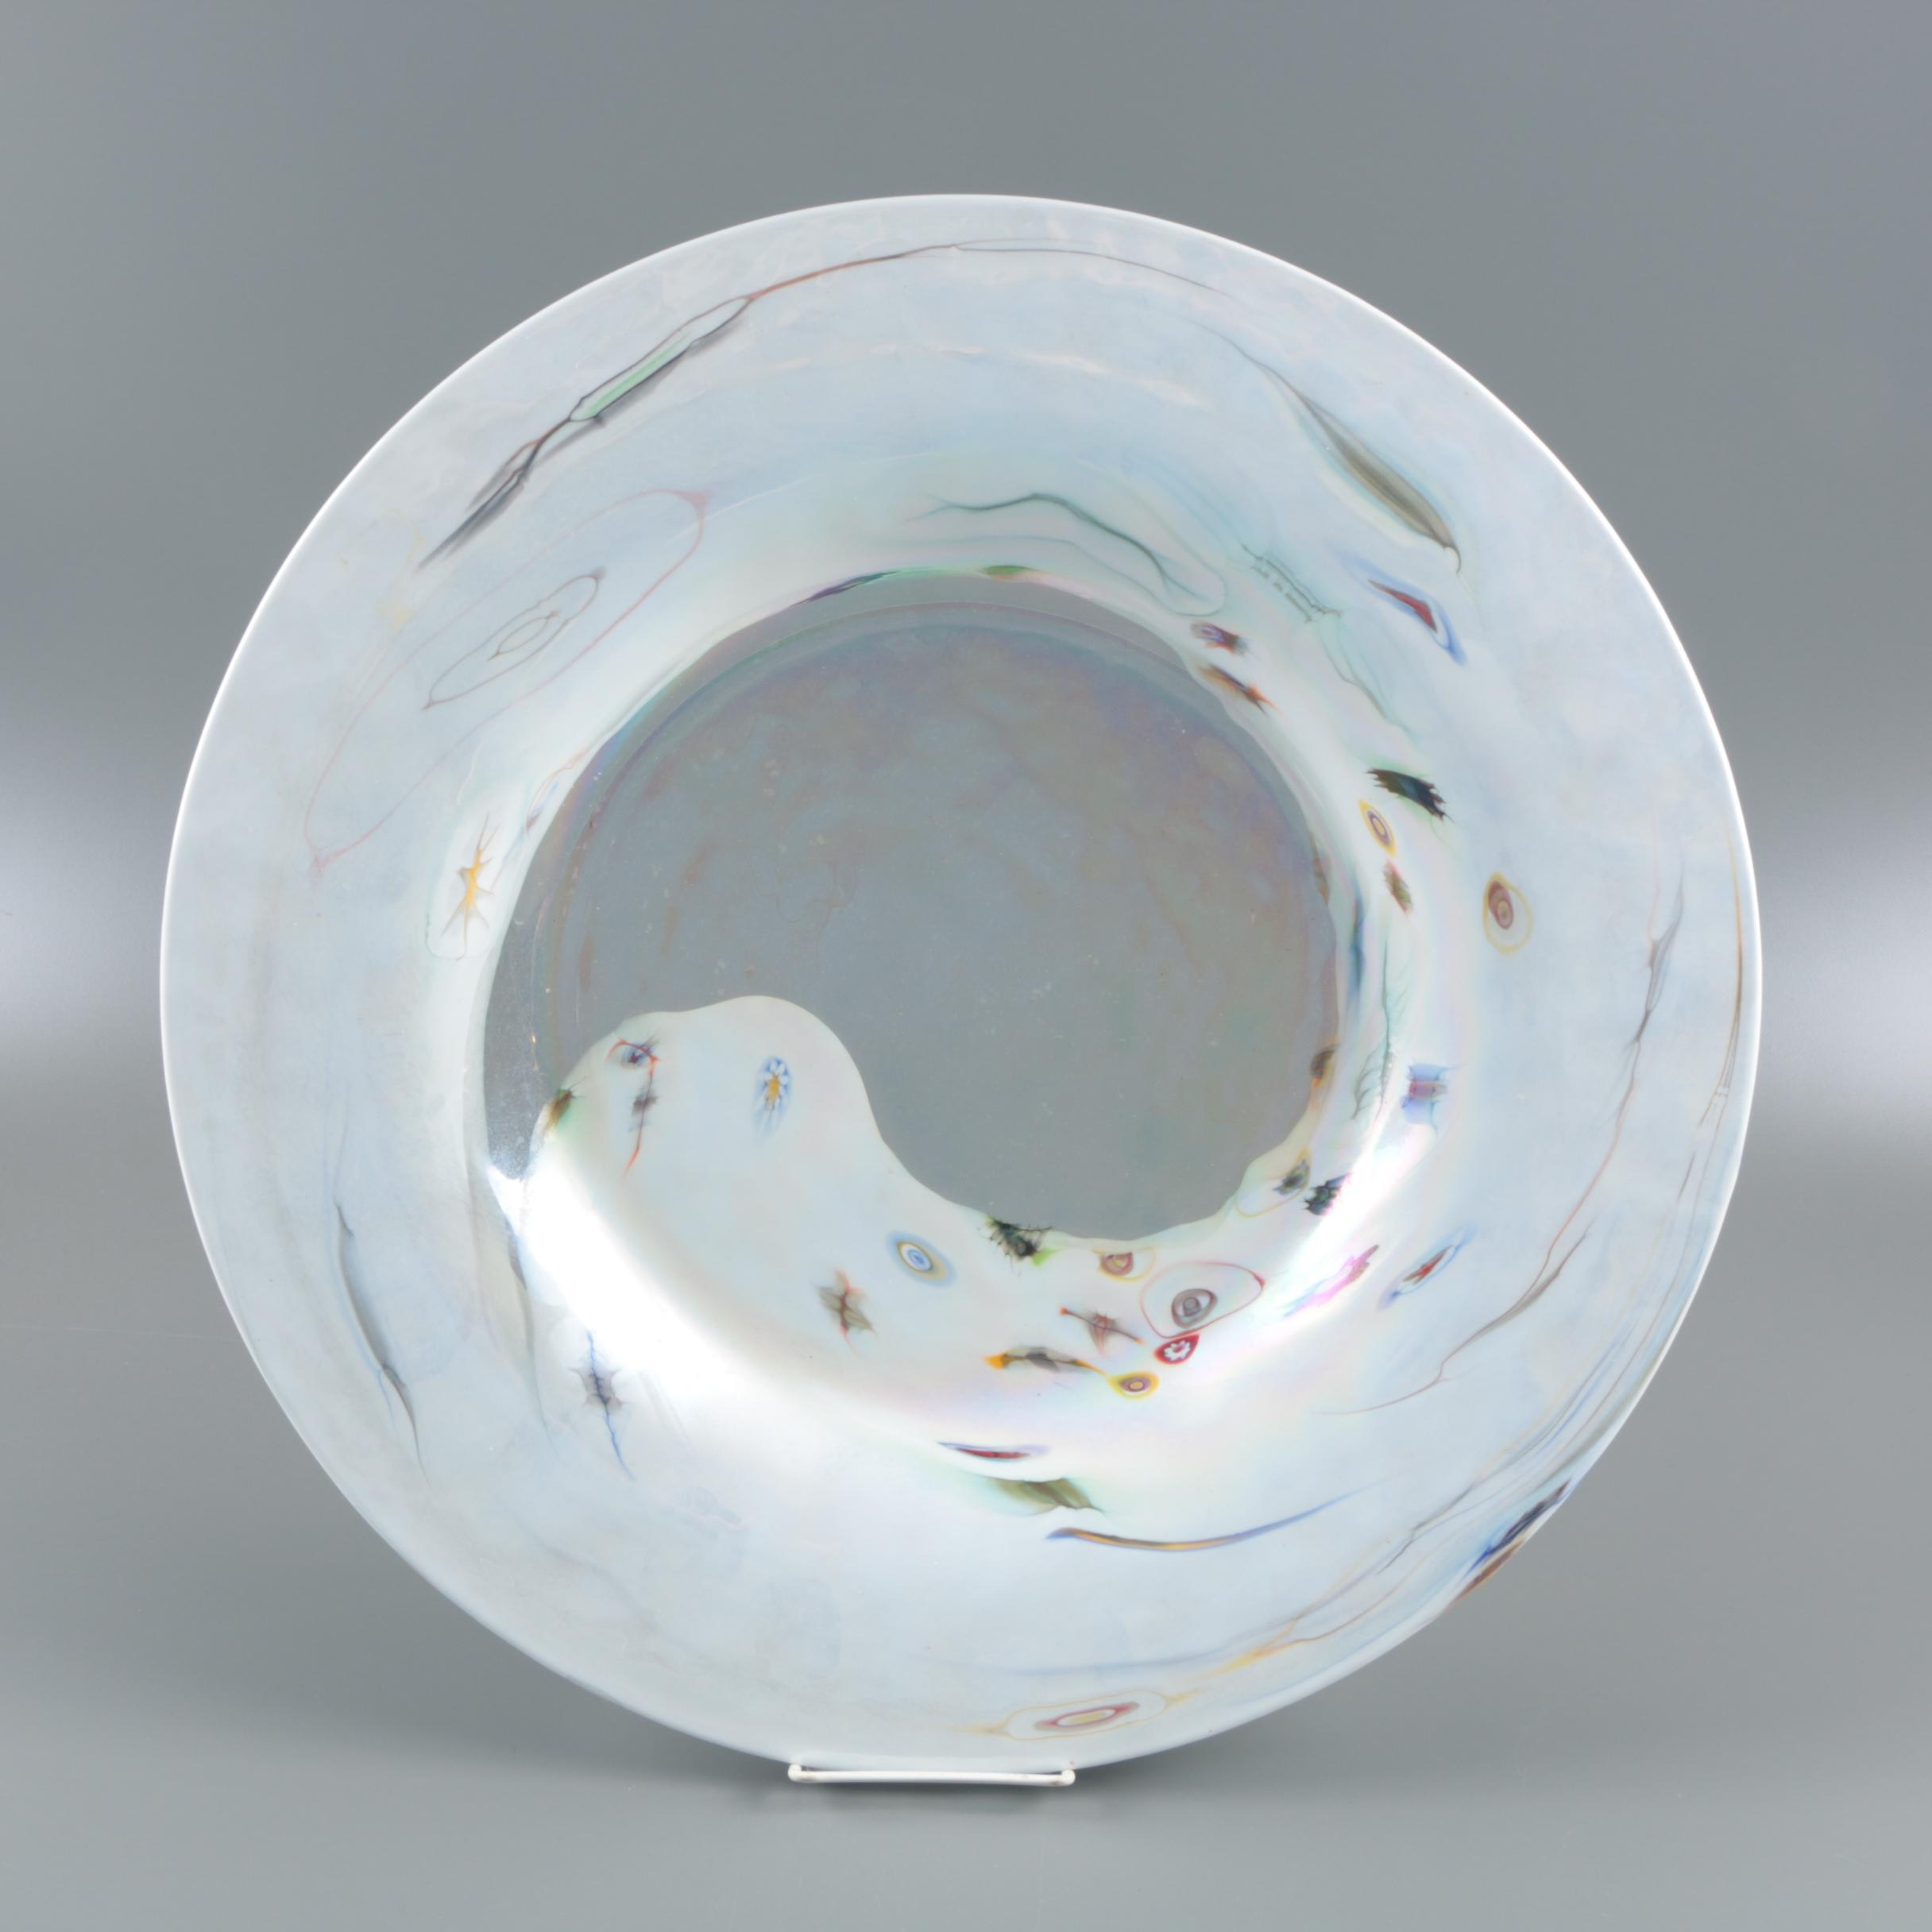 Iridescent White to Clear Blown Glass Centerpiece Bowl